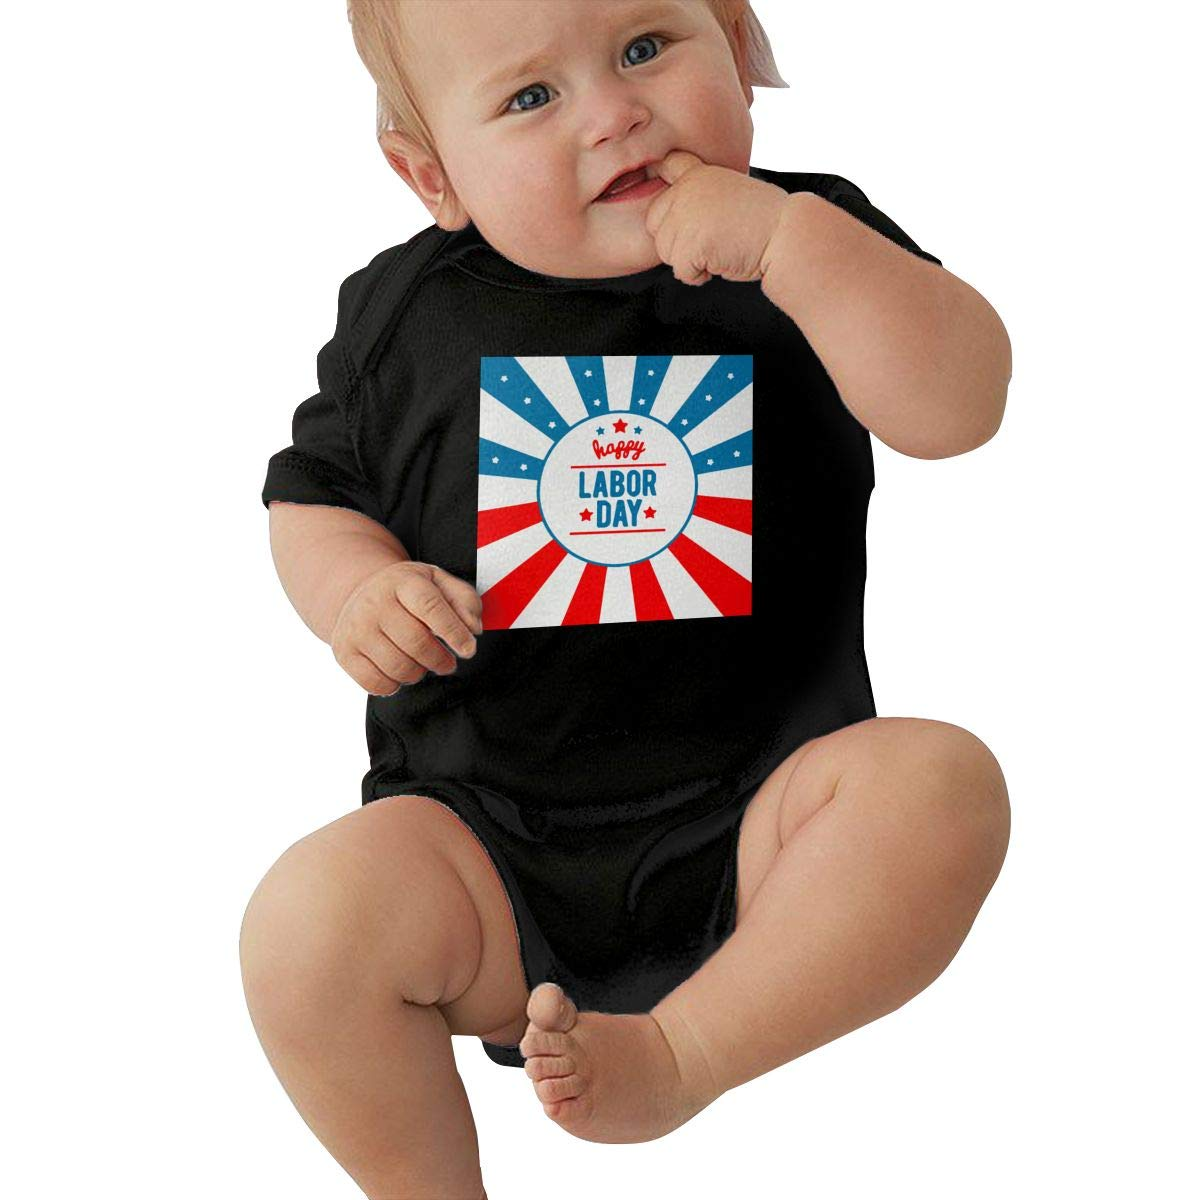 Q98BABY Infant Baby Boys Girls Short Sleeve Baby Clothes Celebrate Labor Day Funny Round Neck Baby Clothes